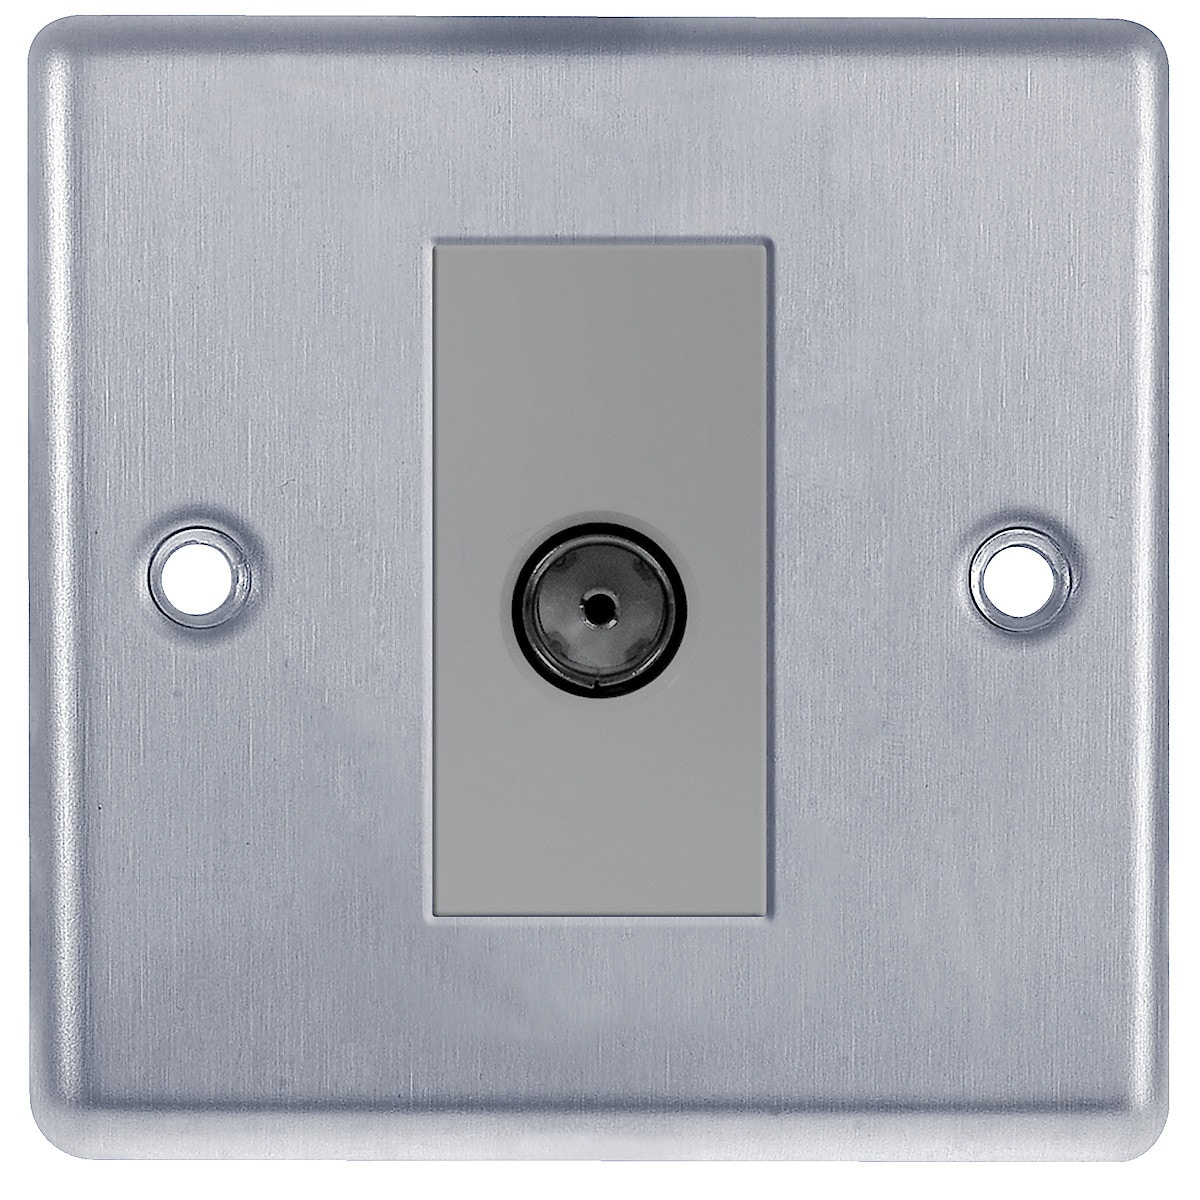 BG Stainless Steel Flat Plate Co-Axial Socket